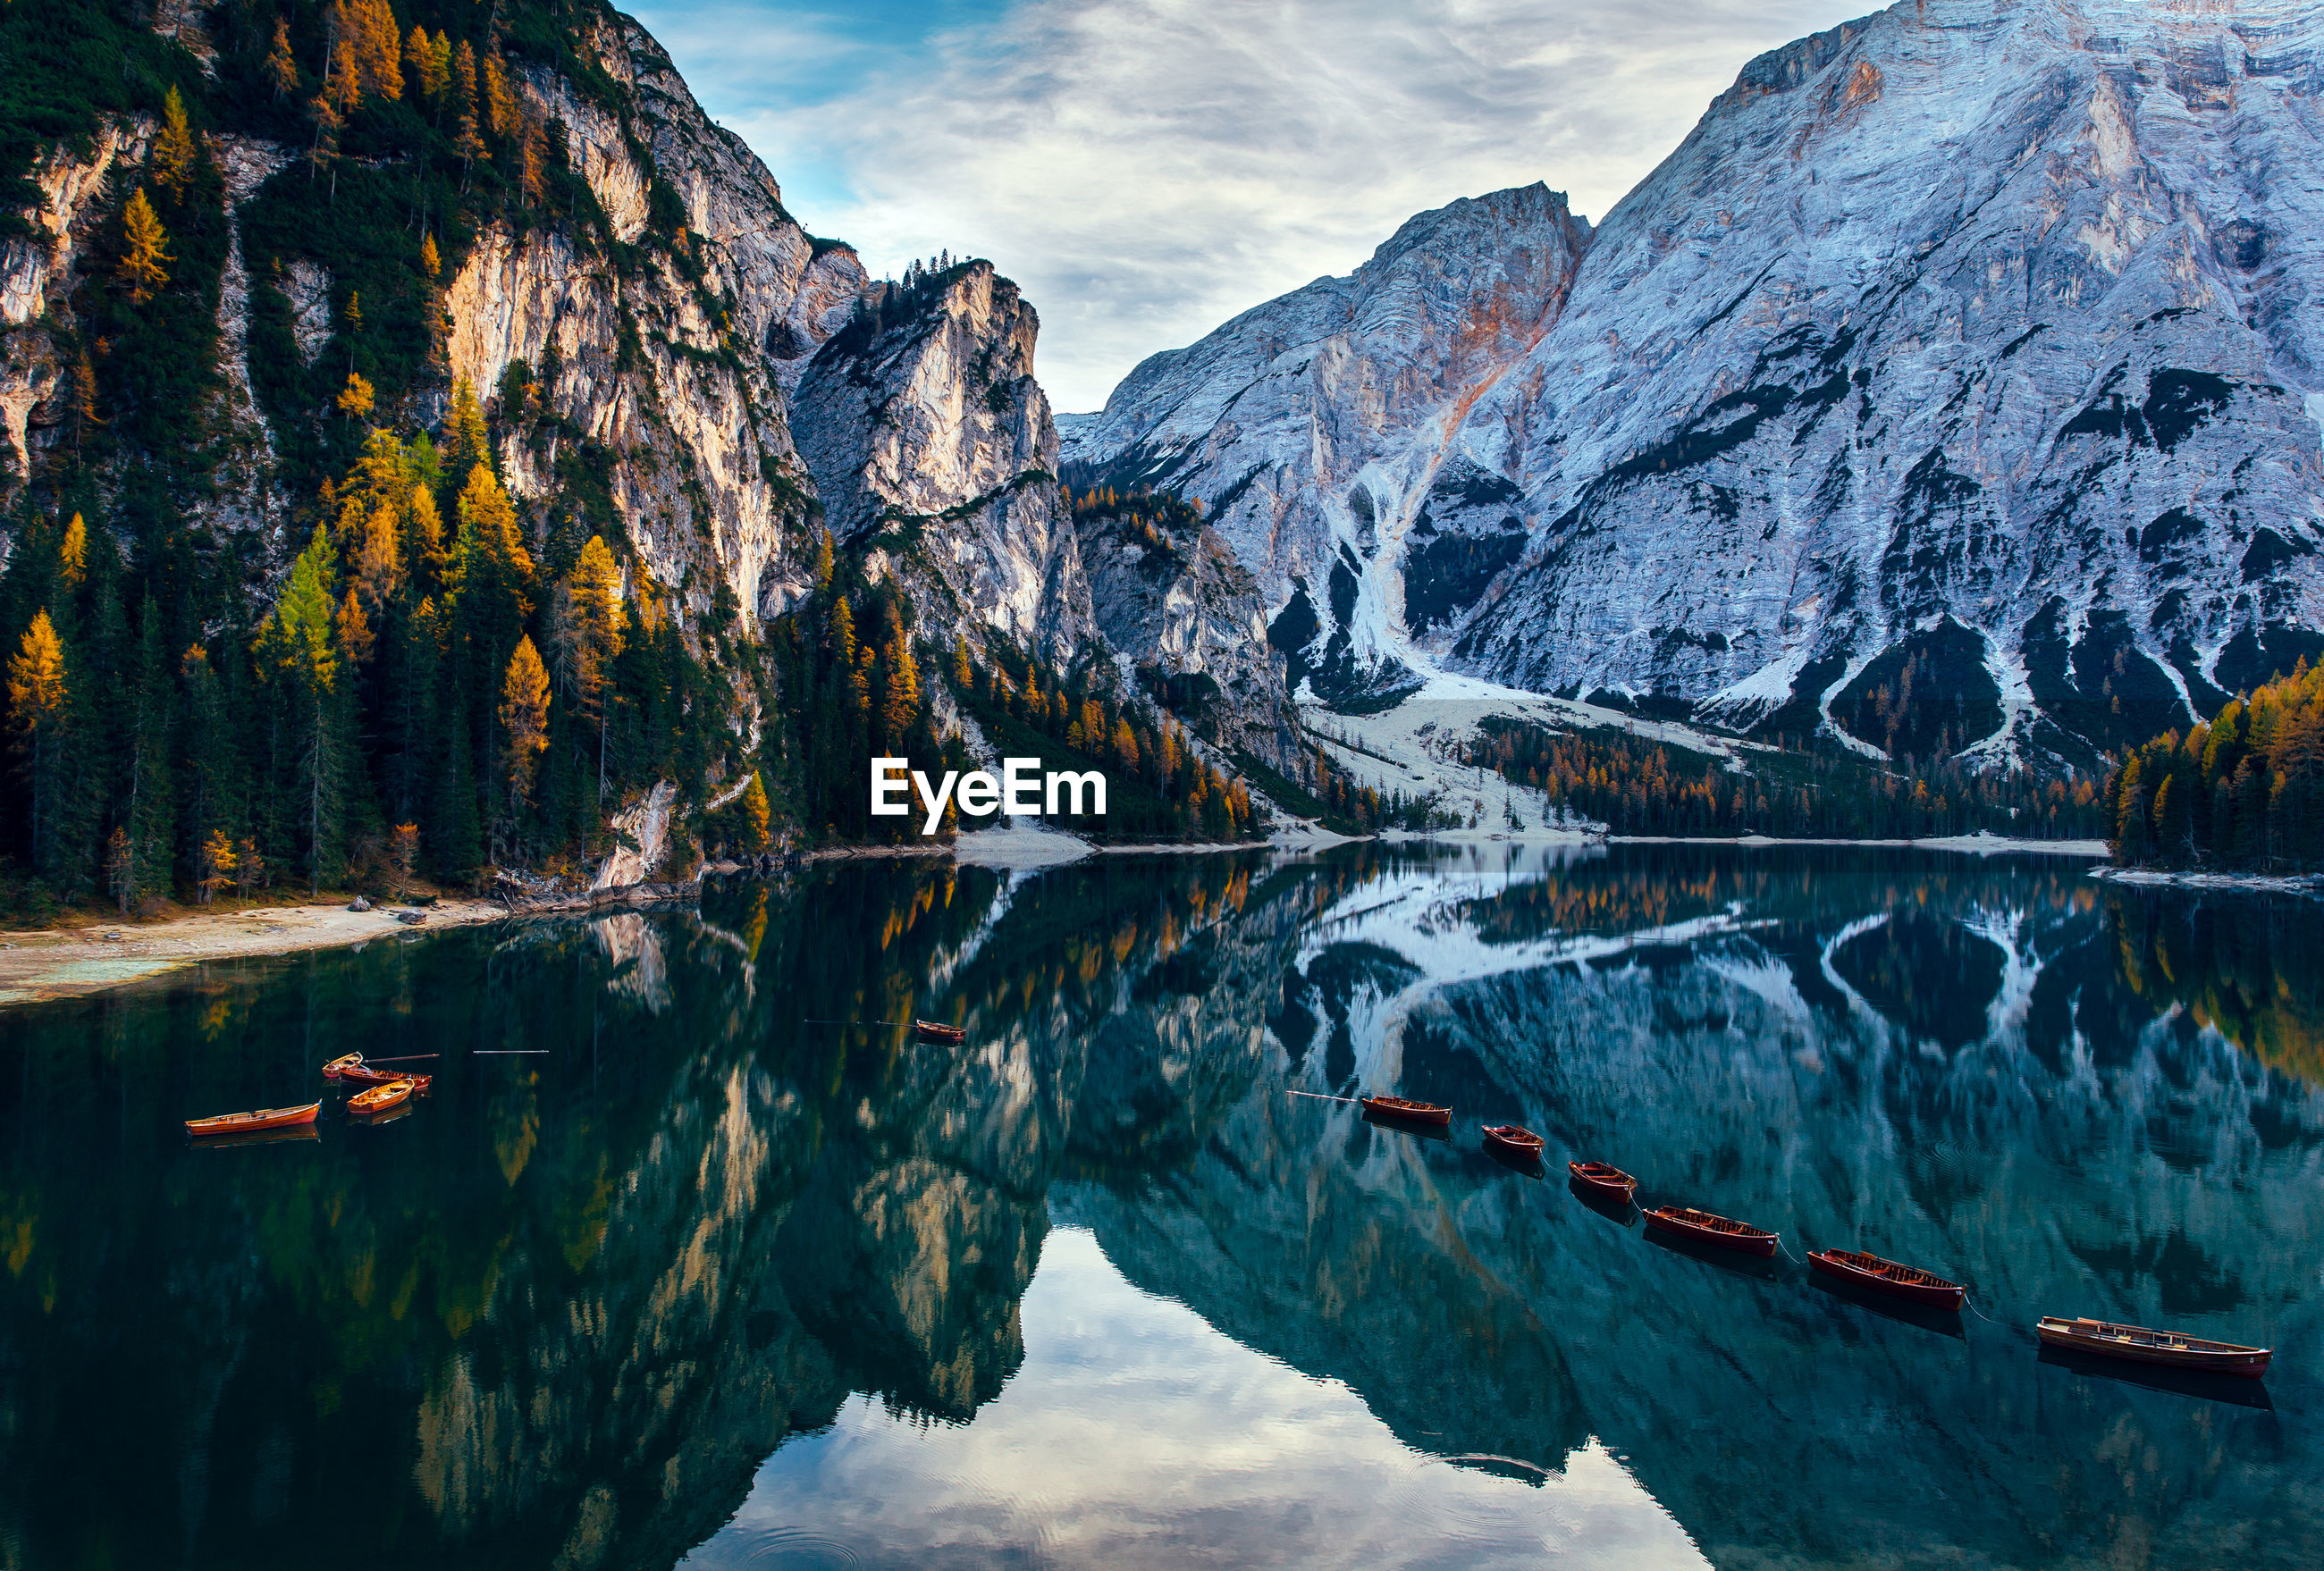 Boats in lake against snowcapped mountains